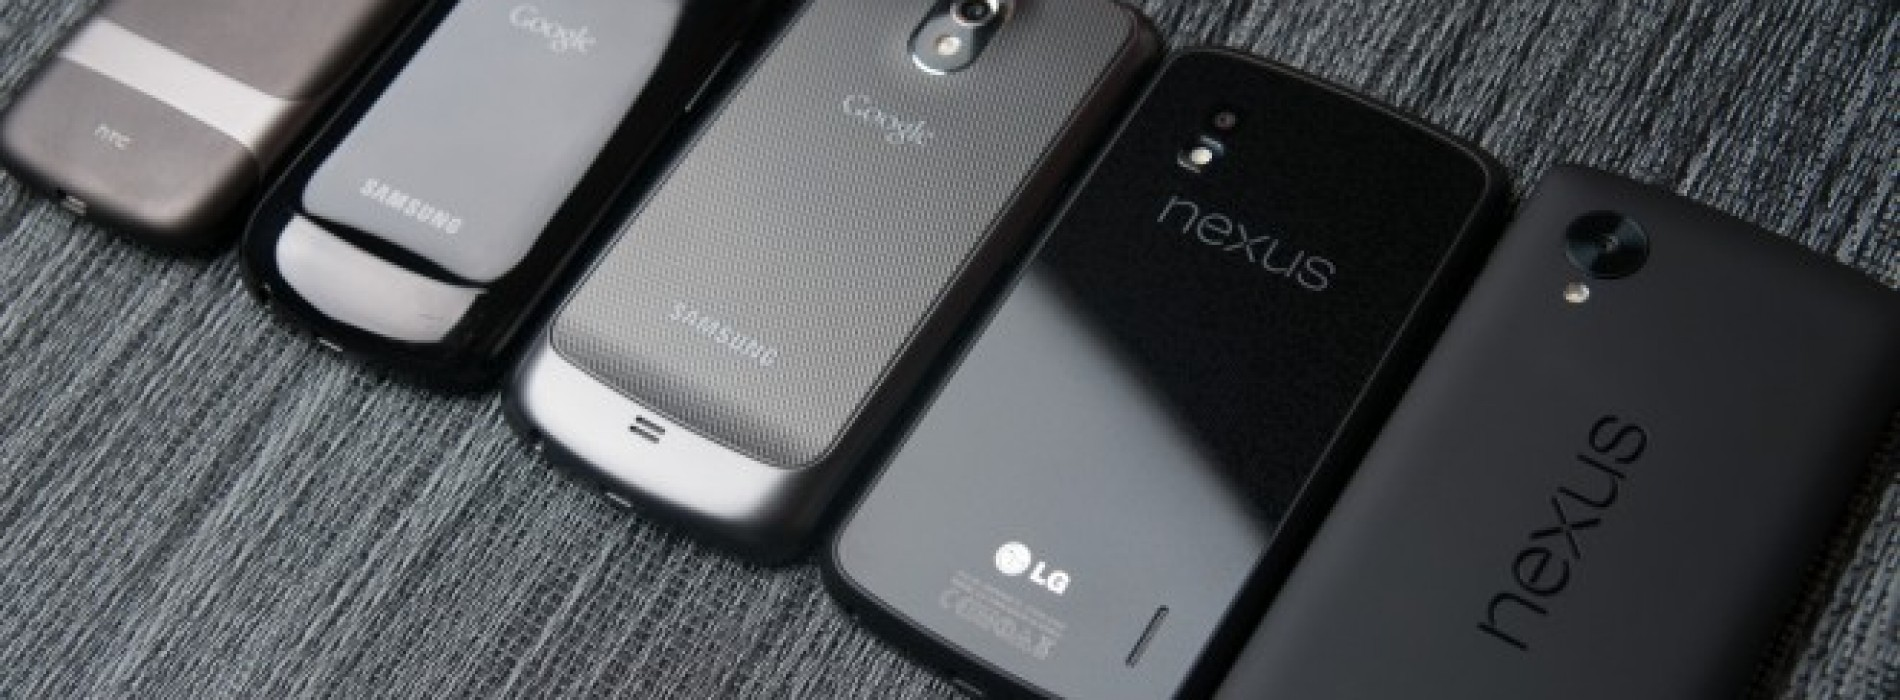 Developers deserve the ultimate Nexus phone